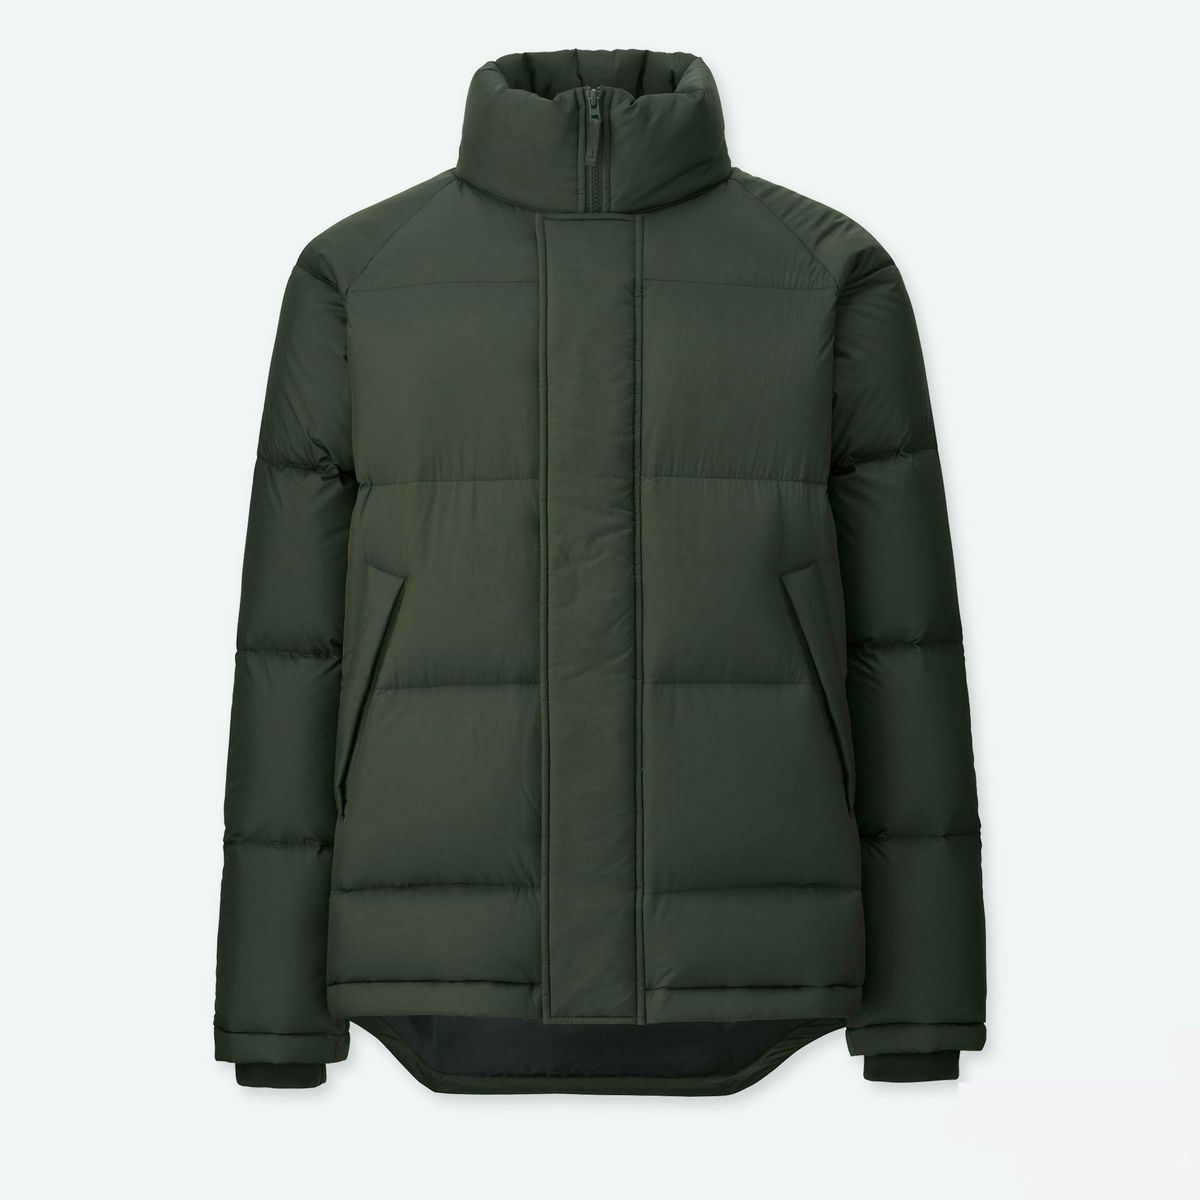 An olive puffer jacket